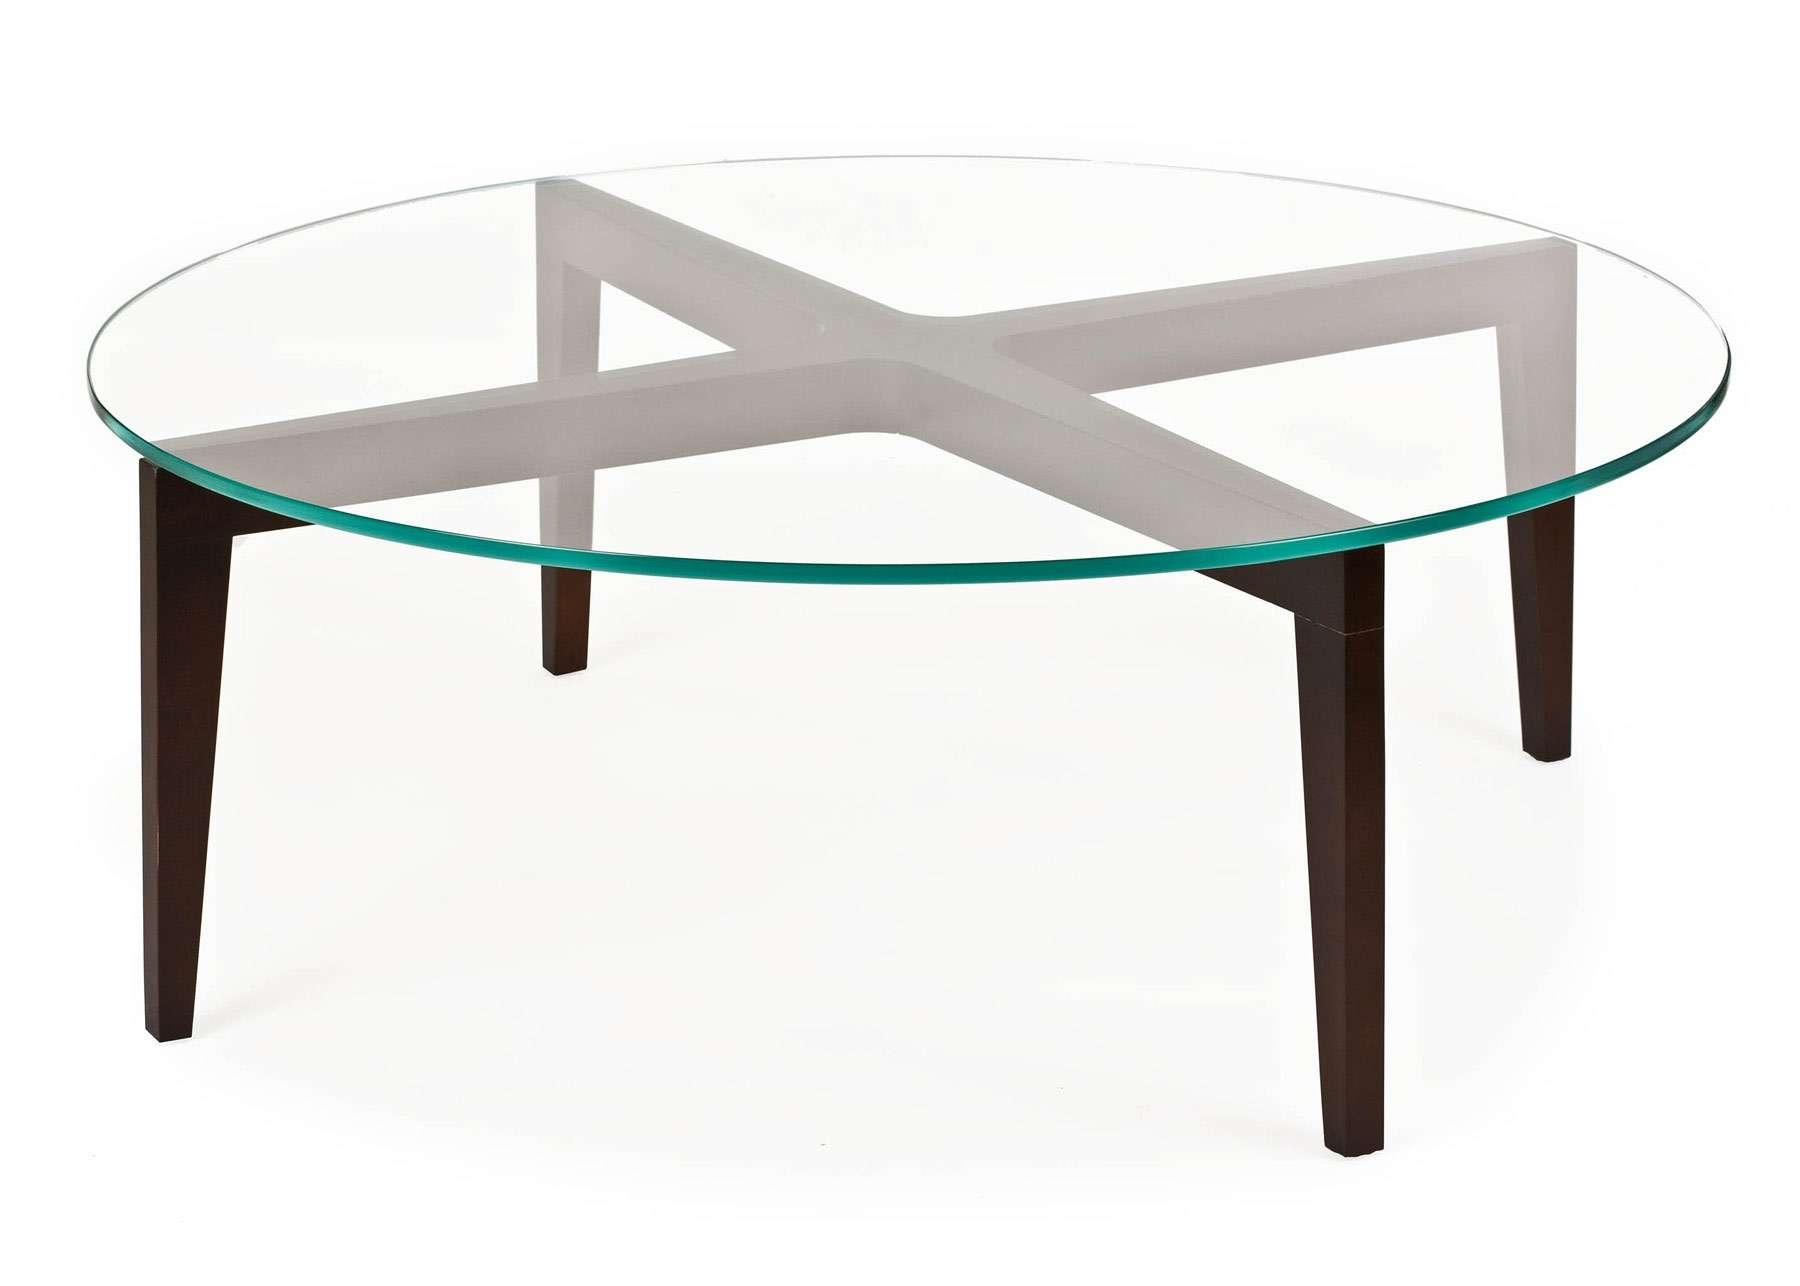 Well Known Glass Circle Coffee Tables Regarding Adorable Round Glass Coffee Table Wood Base For Home Interior (View 6 of 20)